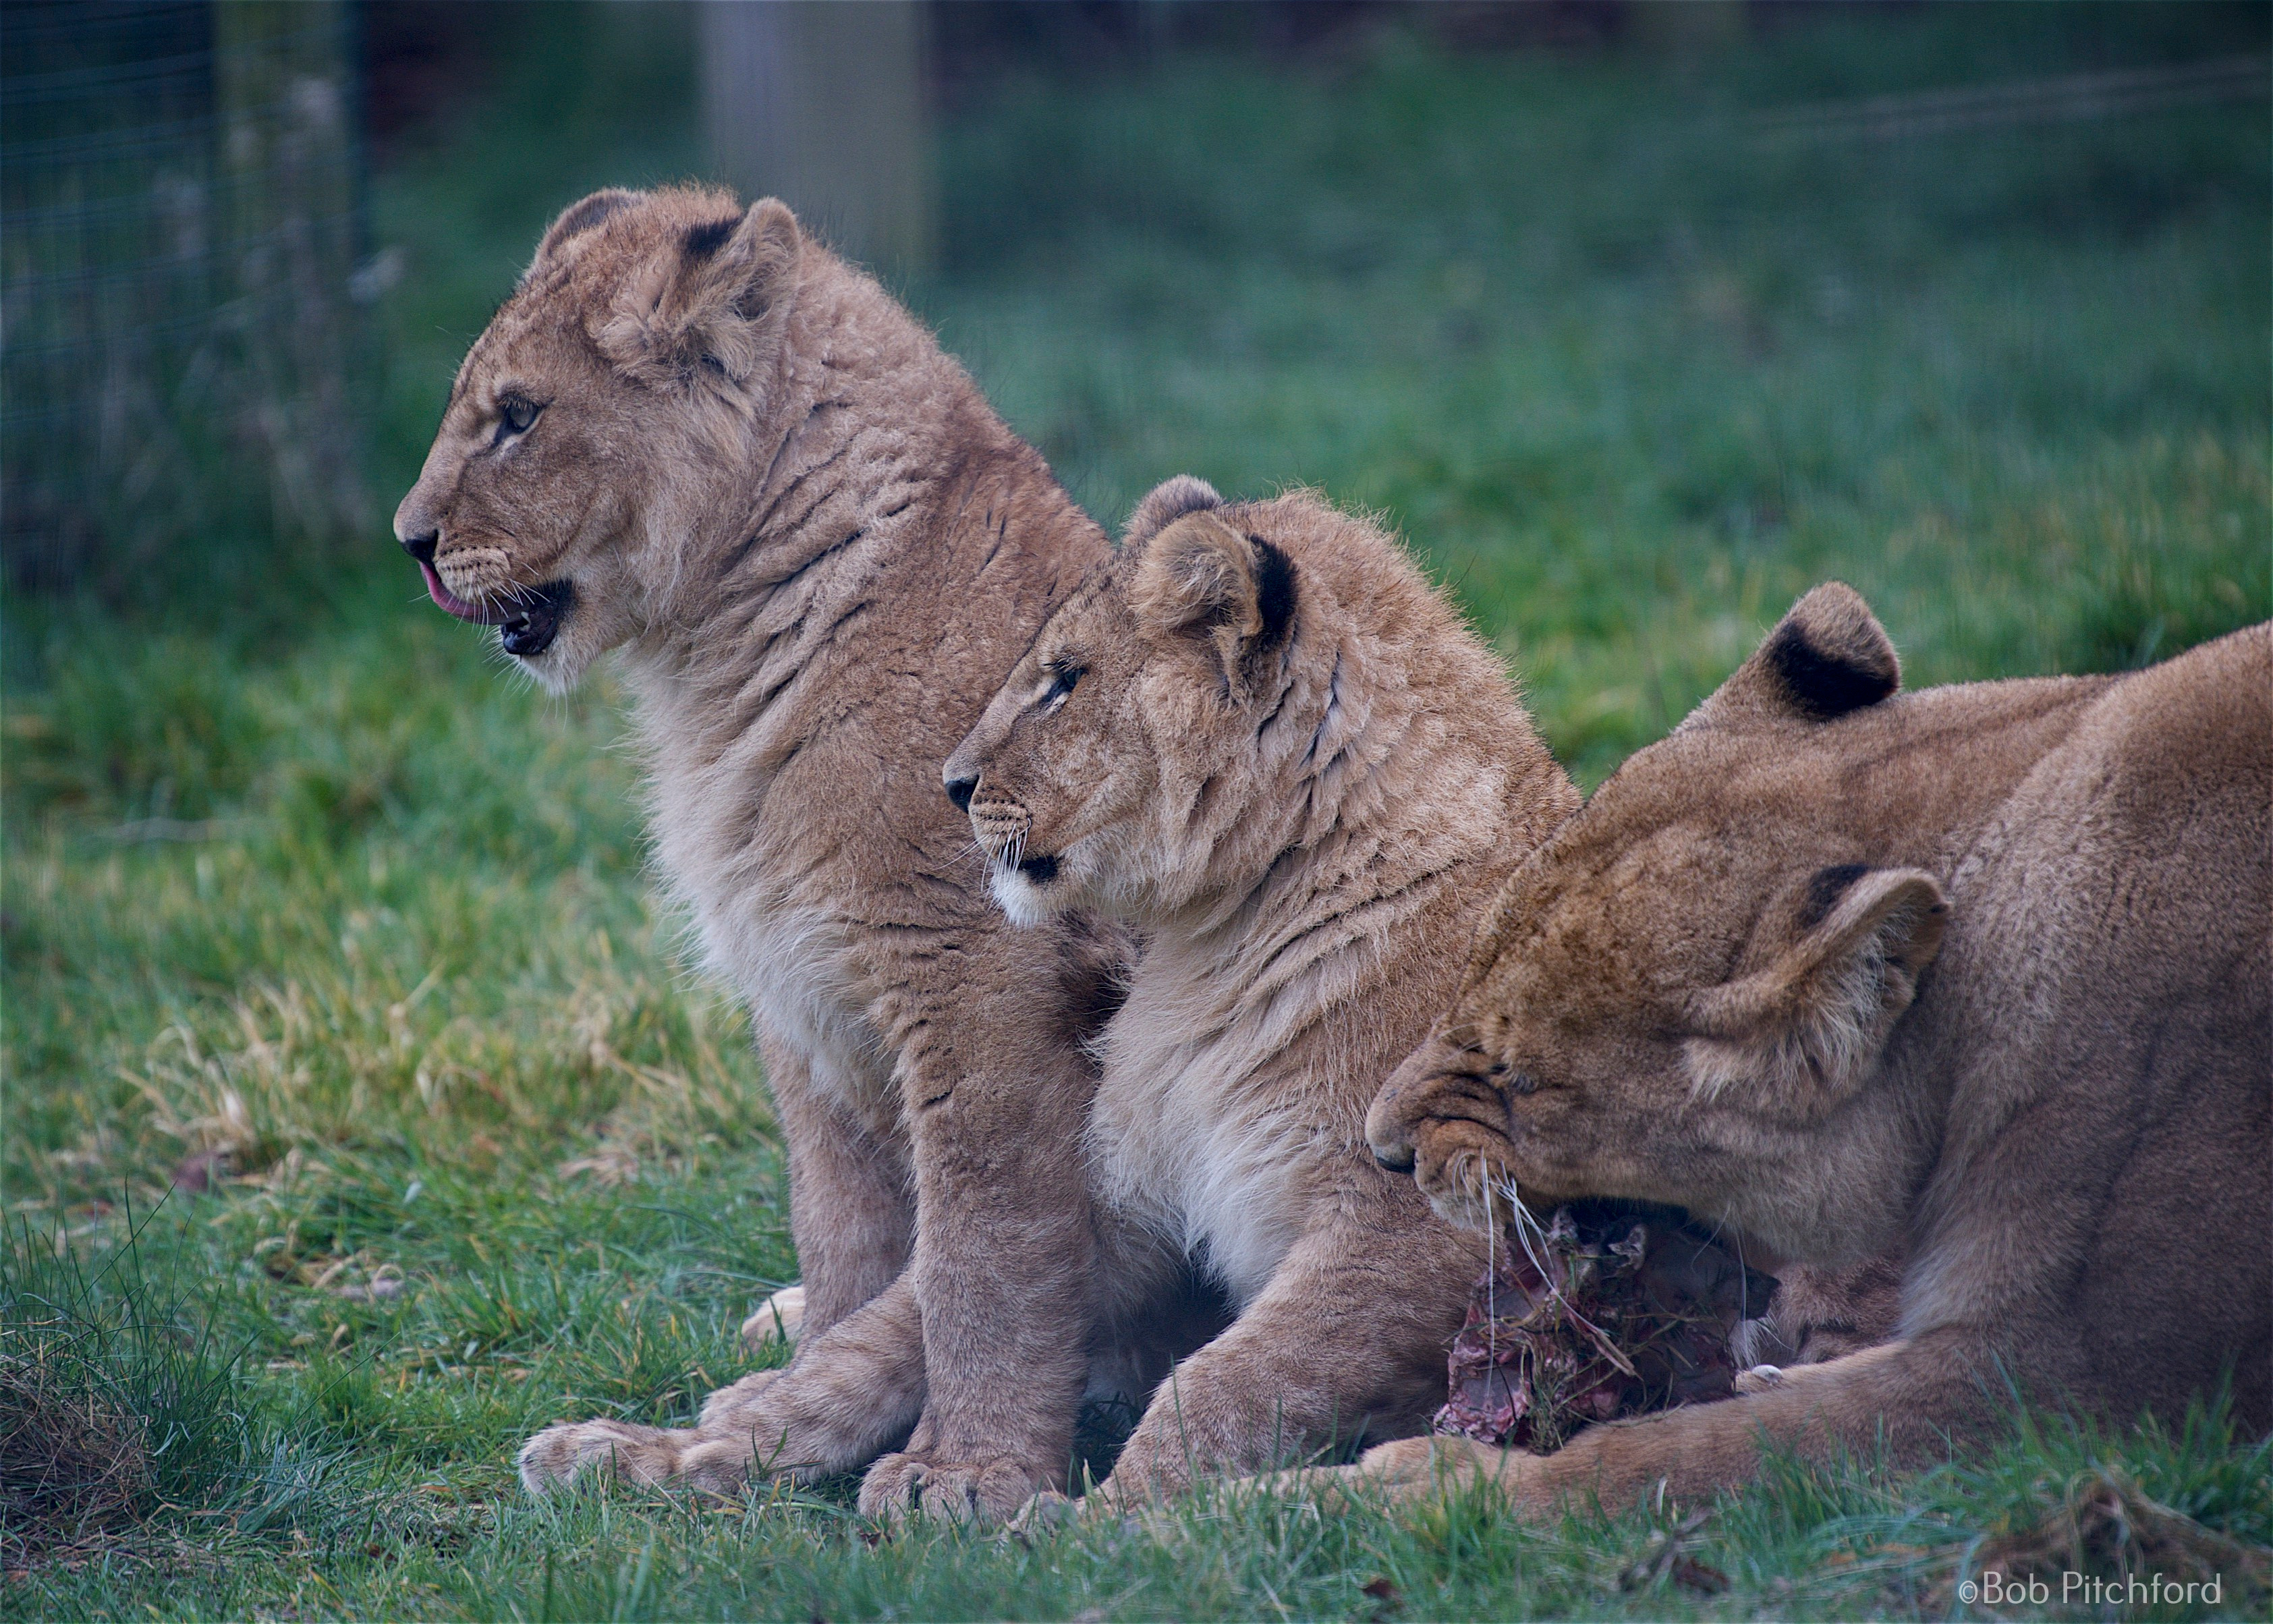 Lioness with 2 lion cubs